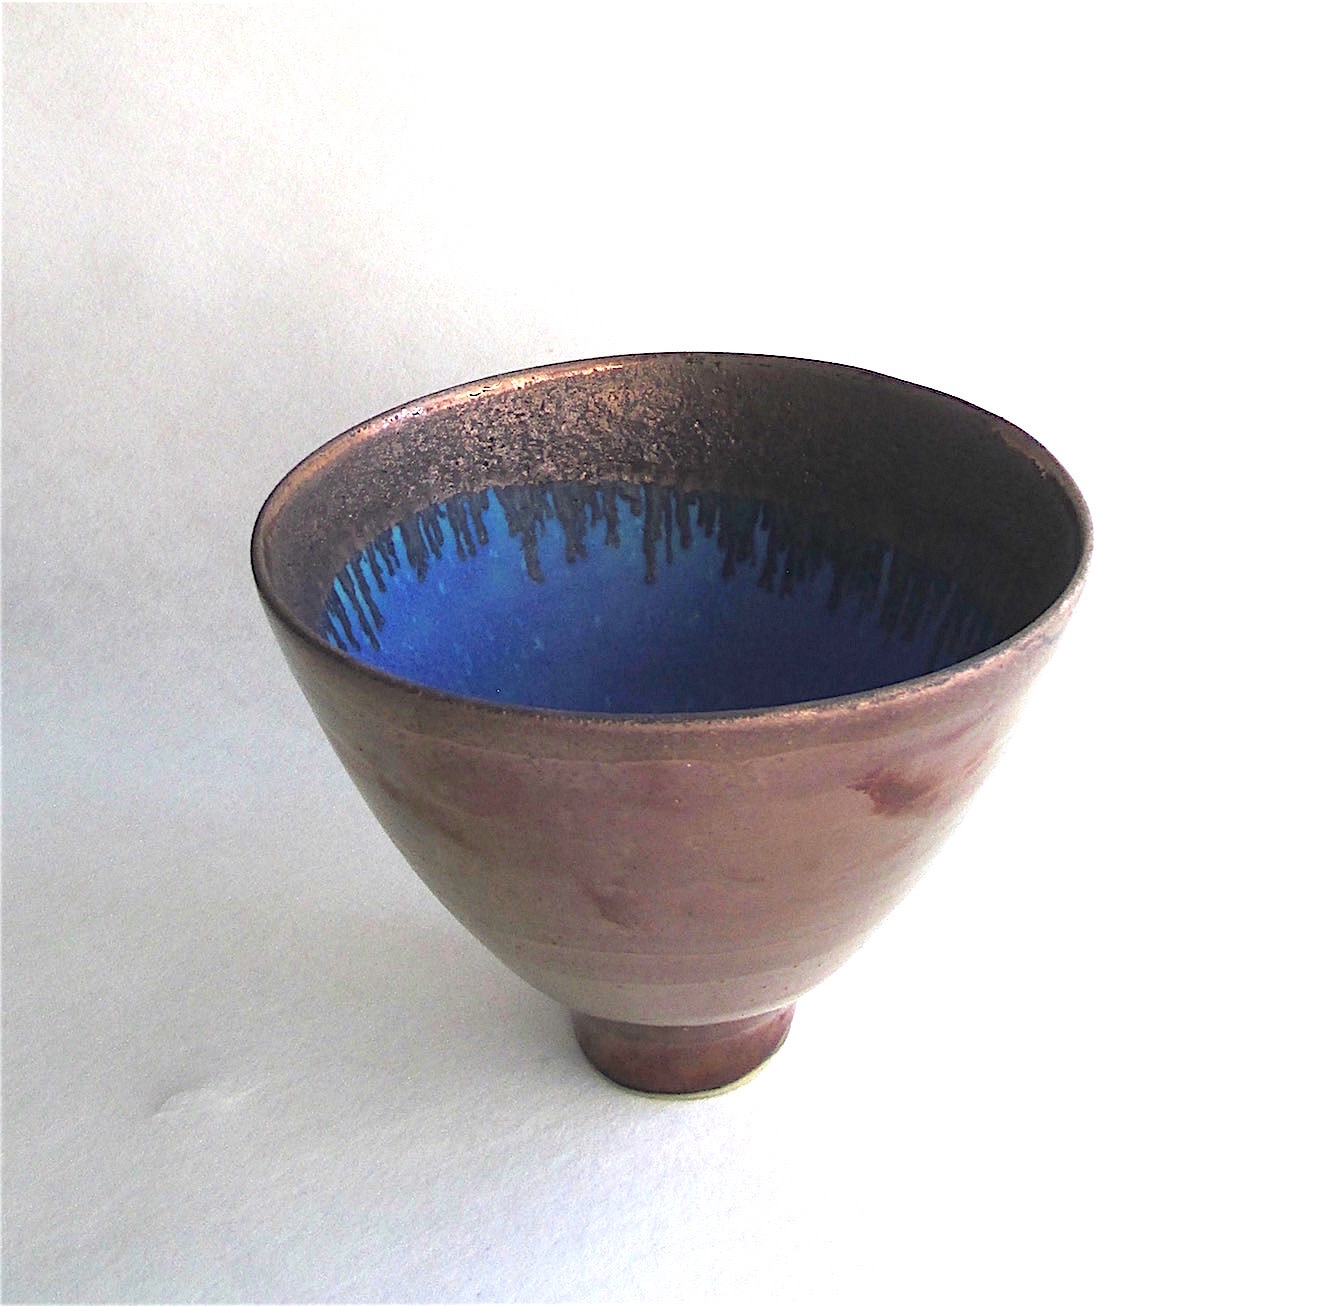 <span class=&#34;link fancybox-details-link&#34;><a href=&#34;/artists/44-sarah-perry/works/5970-sarah-perry-copper-lustered-blue-pool-bowl-2018/&#34;>View Detail Page</a></span><div class=&#34;artist&#34;><strong>Sarah Perry</strong></div> <div class=&#34;title&#34;><em>Copper Lustered Blue Pool Bowl</em>, 2018</div> <div class=&#34;signed_and_dated&#34;>stamped by the artist's studio mark</div> <div class=&#34;medium&#34;>thrown stoneware, glazed</div> <div class=&#34;dimensions&#34;>15 x 19 cm<br /> 5 7/8 x 7 1/2 inches</div><div class=&#34;price&#34;>£220.00</div><div class=&#34;copyright_line&#34;>Copyright The Artist</div>